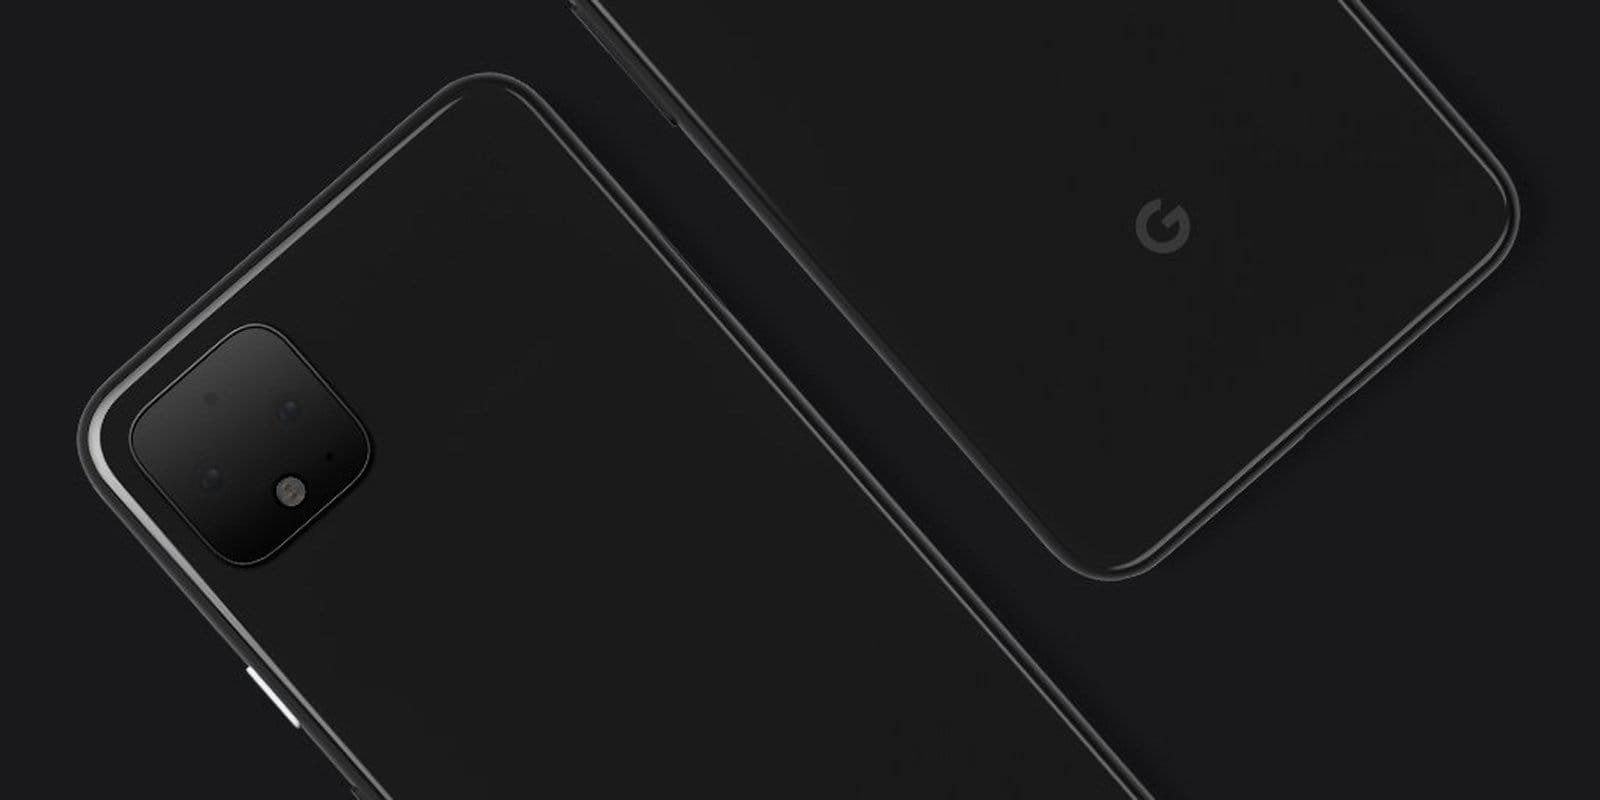 What to expect at Google's October 15th Pixel 4 event